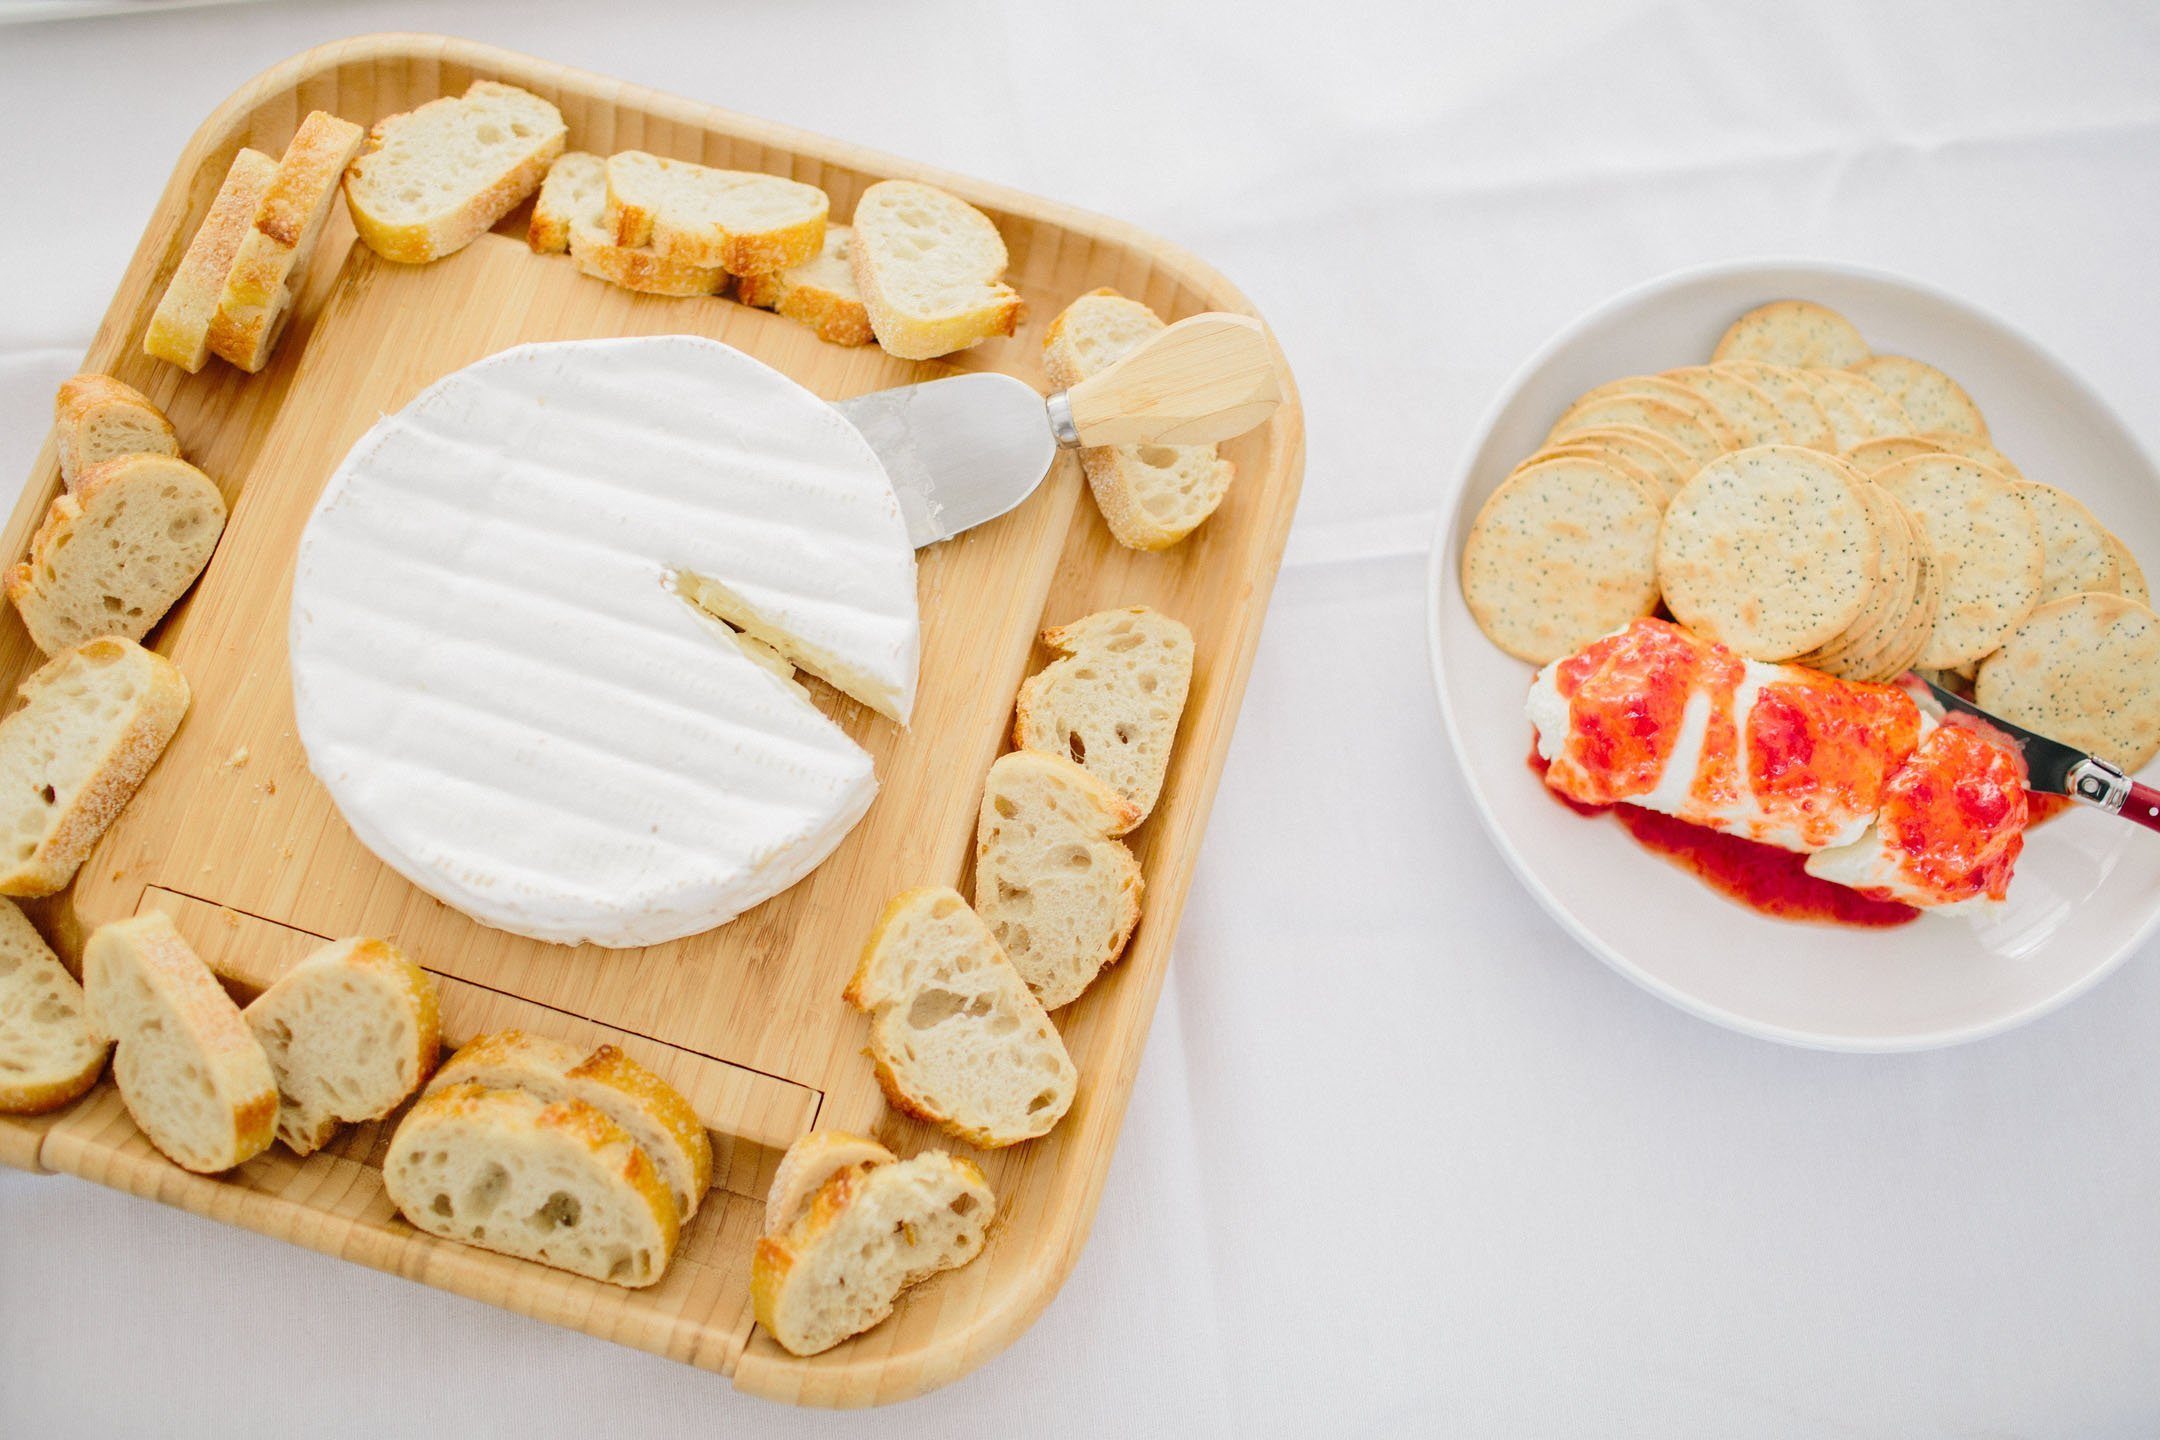 Food ideas for a bridal shower